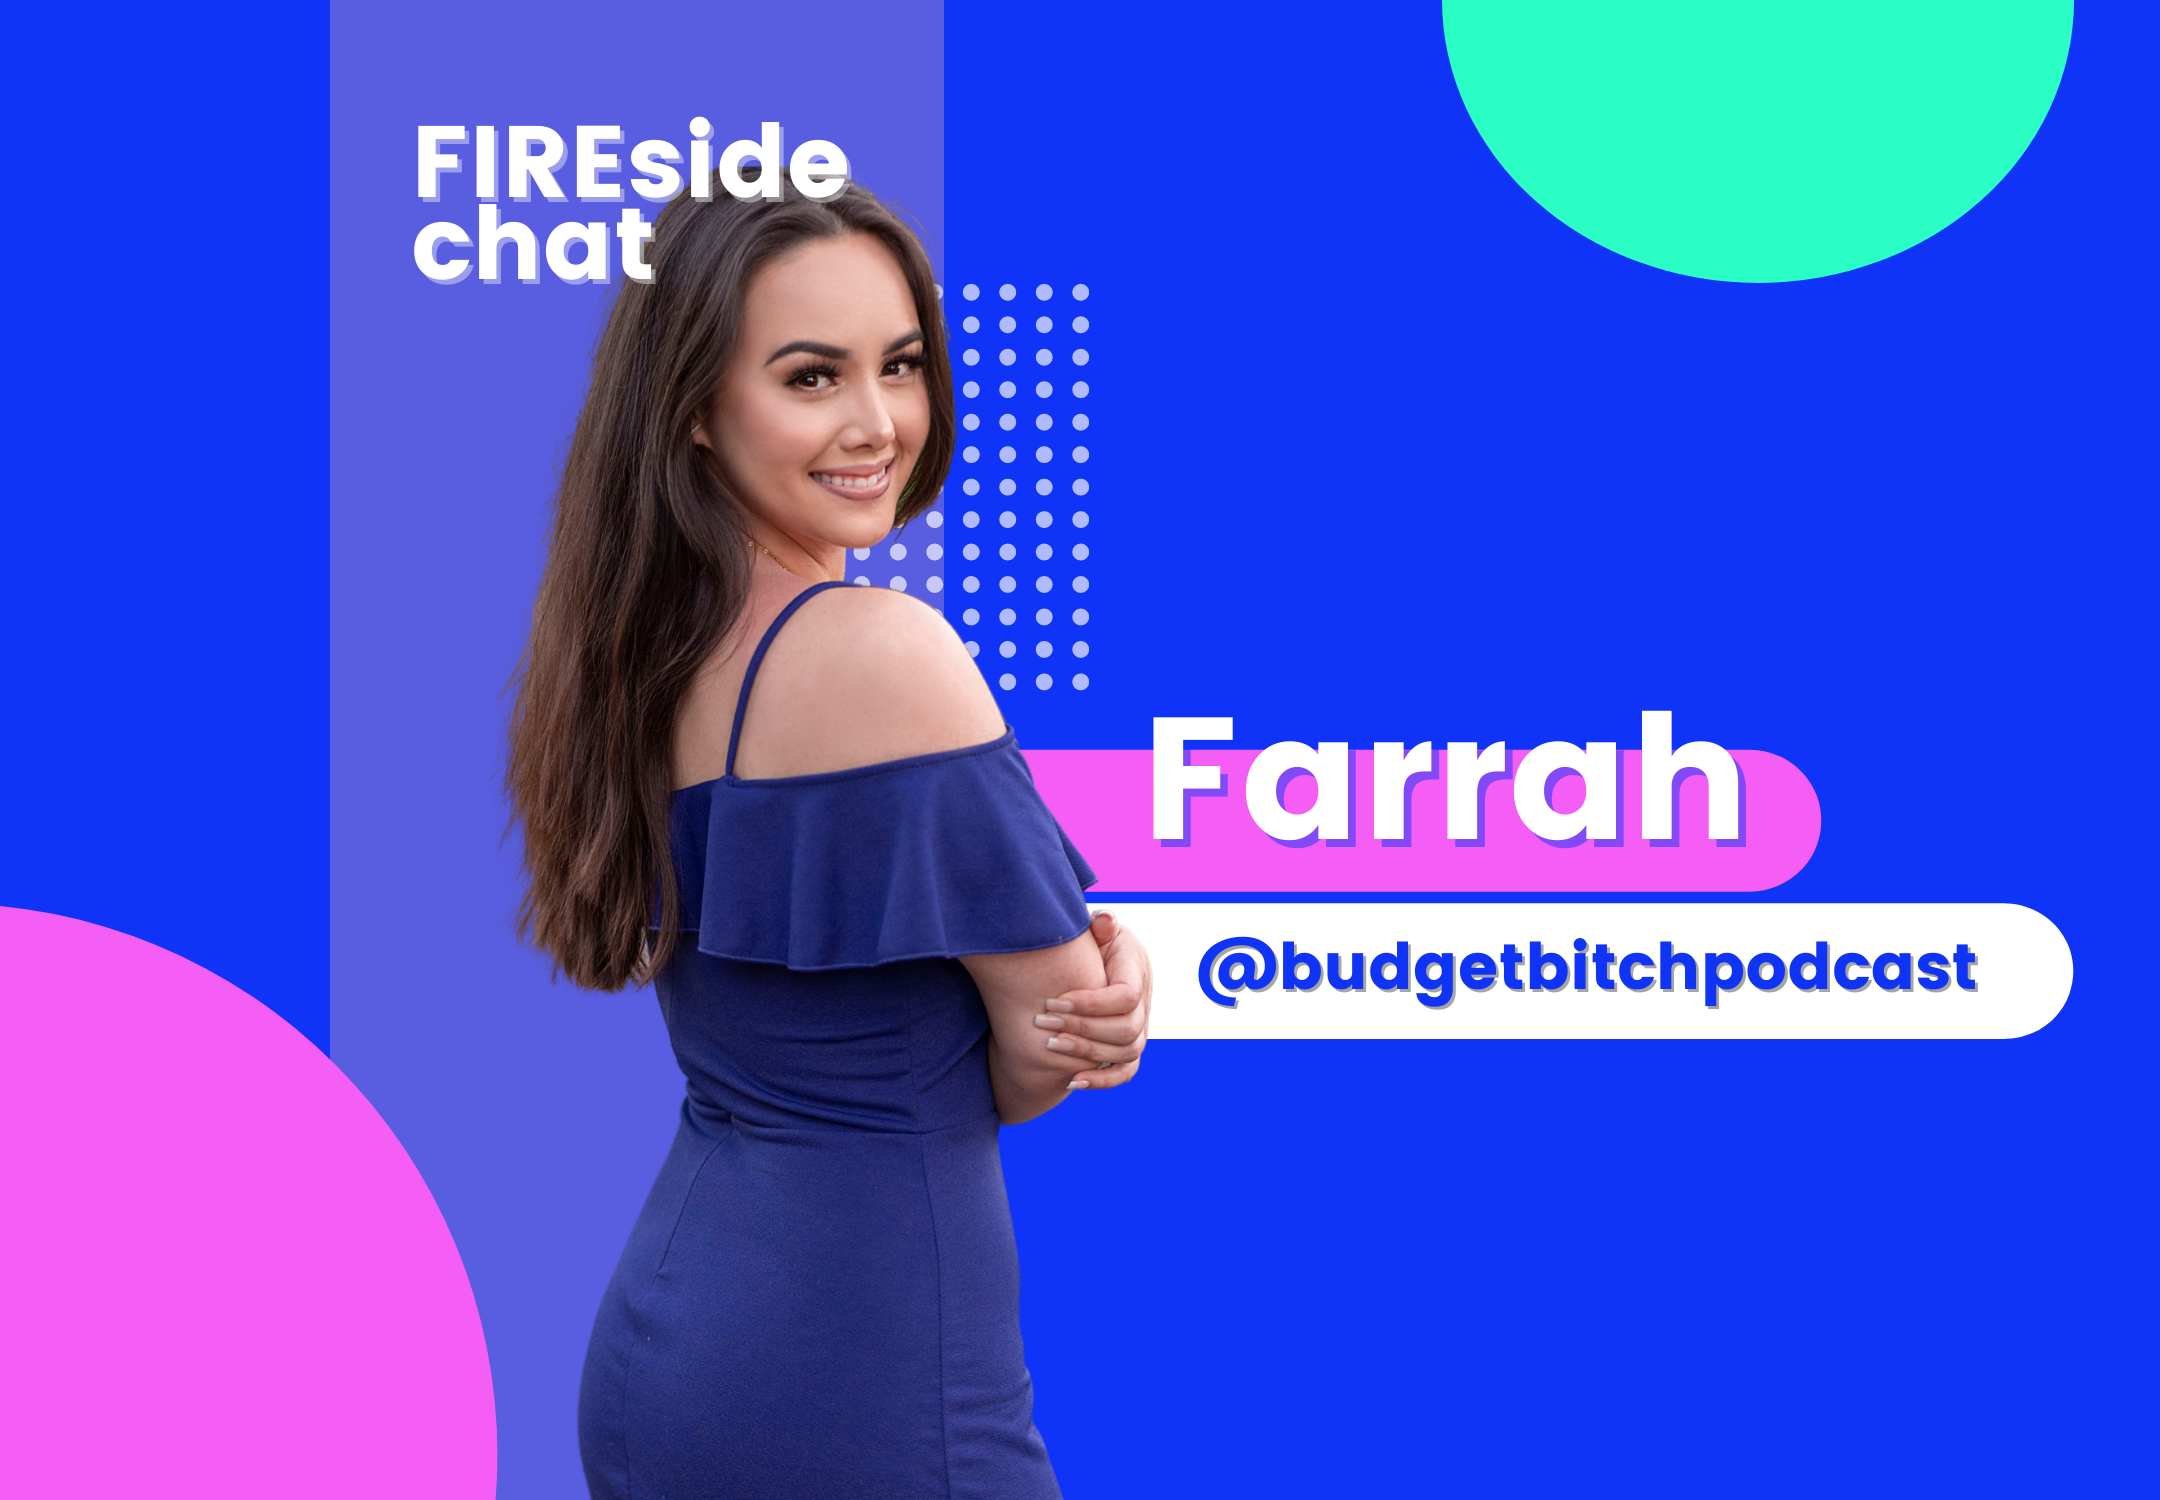 """FIREside chat with Farrah: """"There is a fine line between passion and obsession over money"""""""